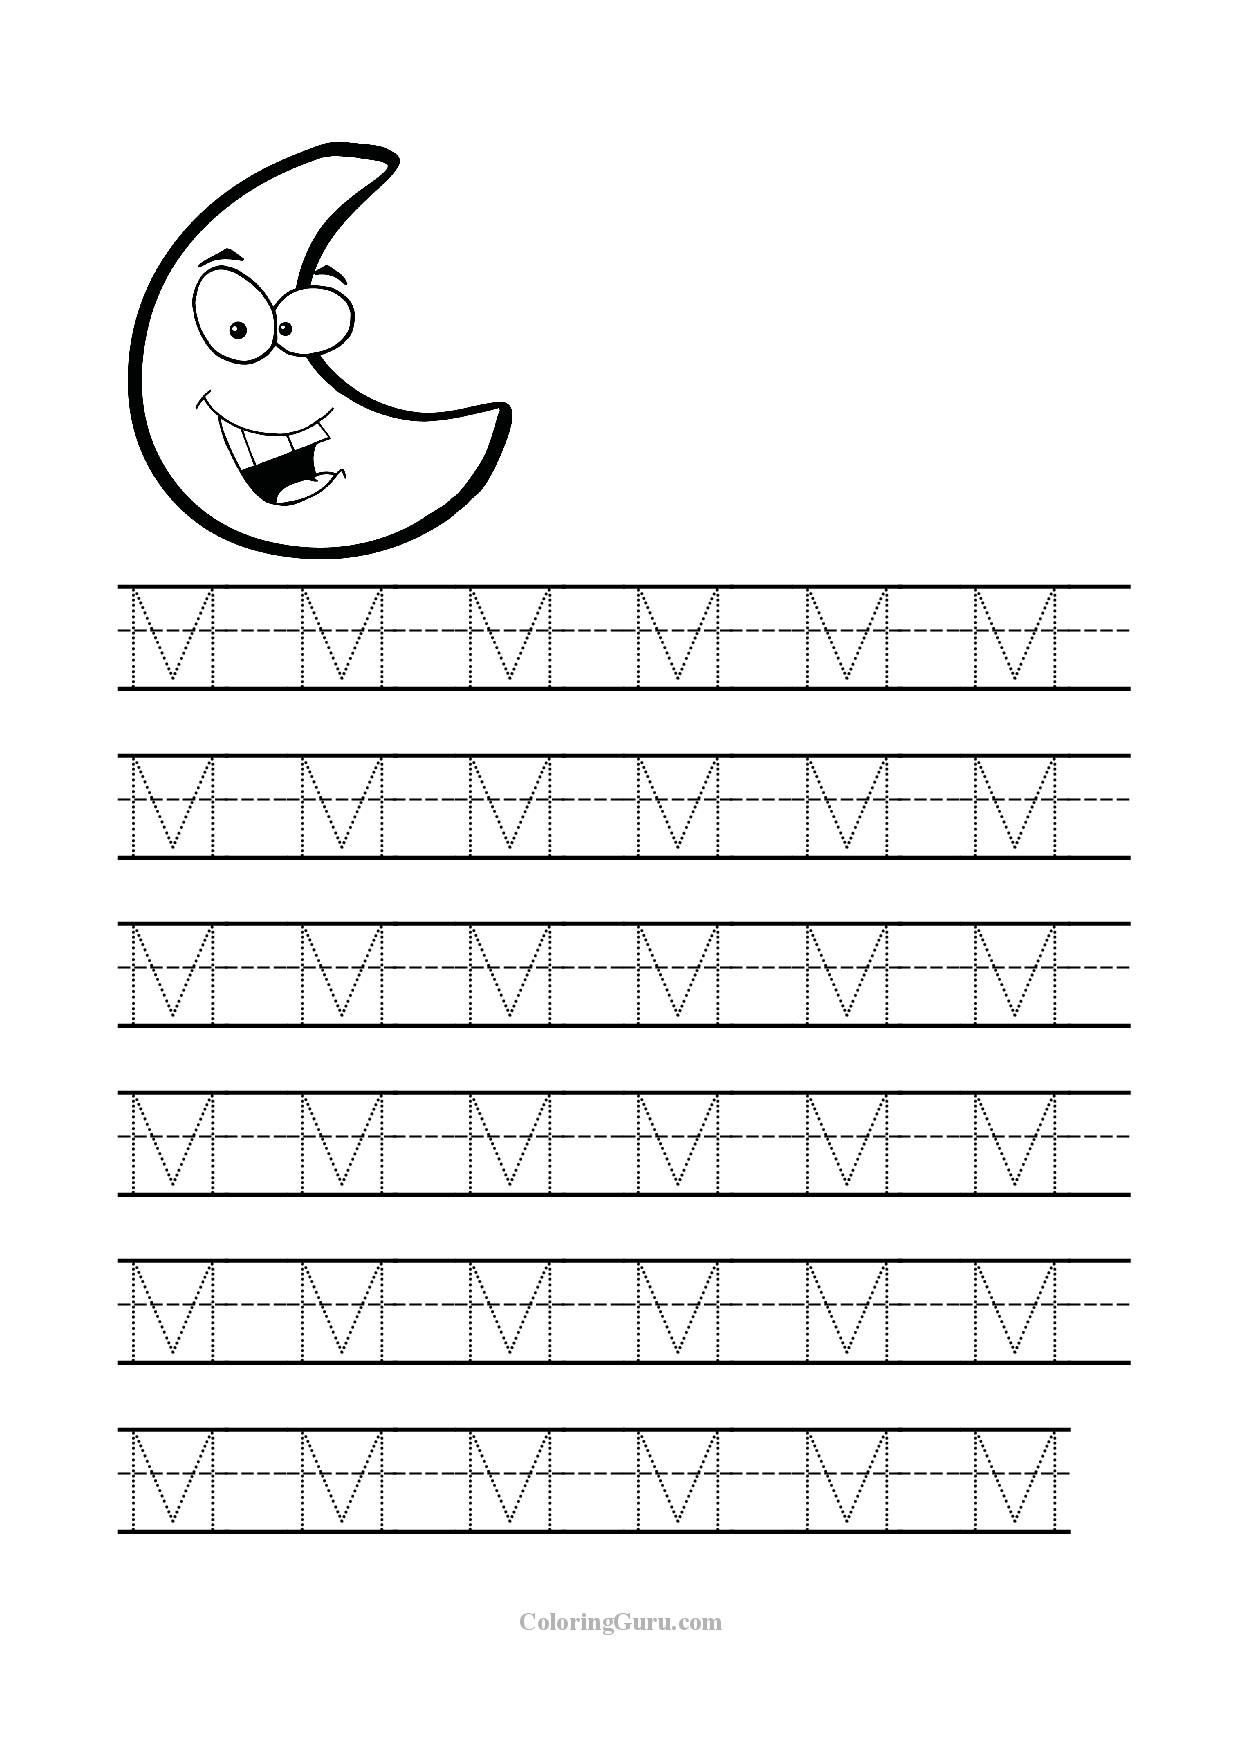 Letter G Tracing Worksheets Preschool Printable Letter M Tracing Worksheets for Preschool Make A